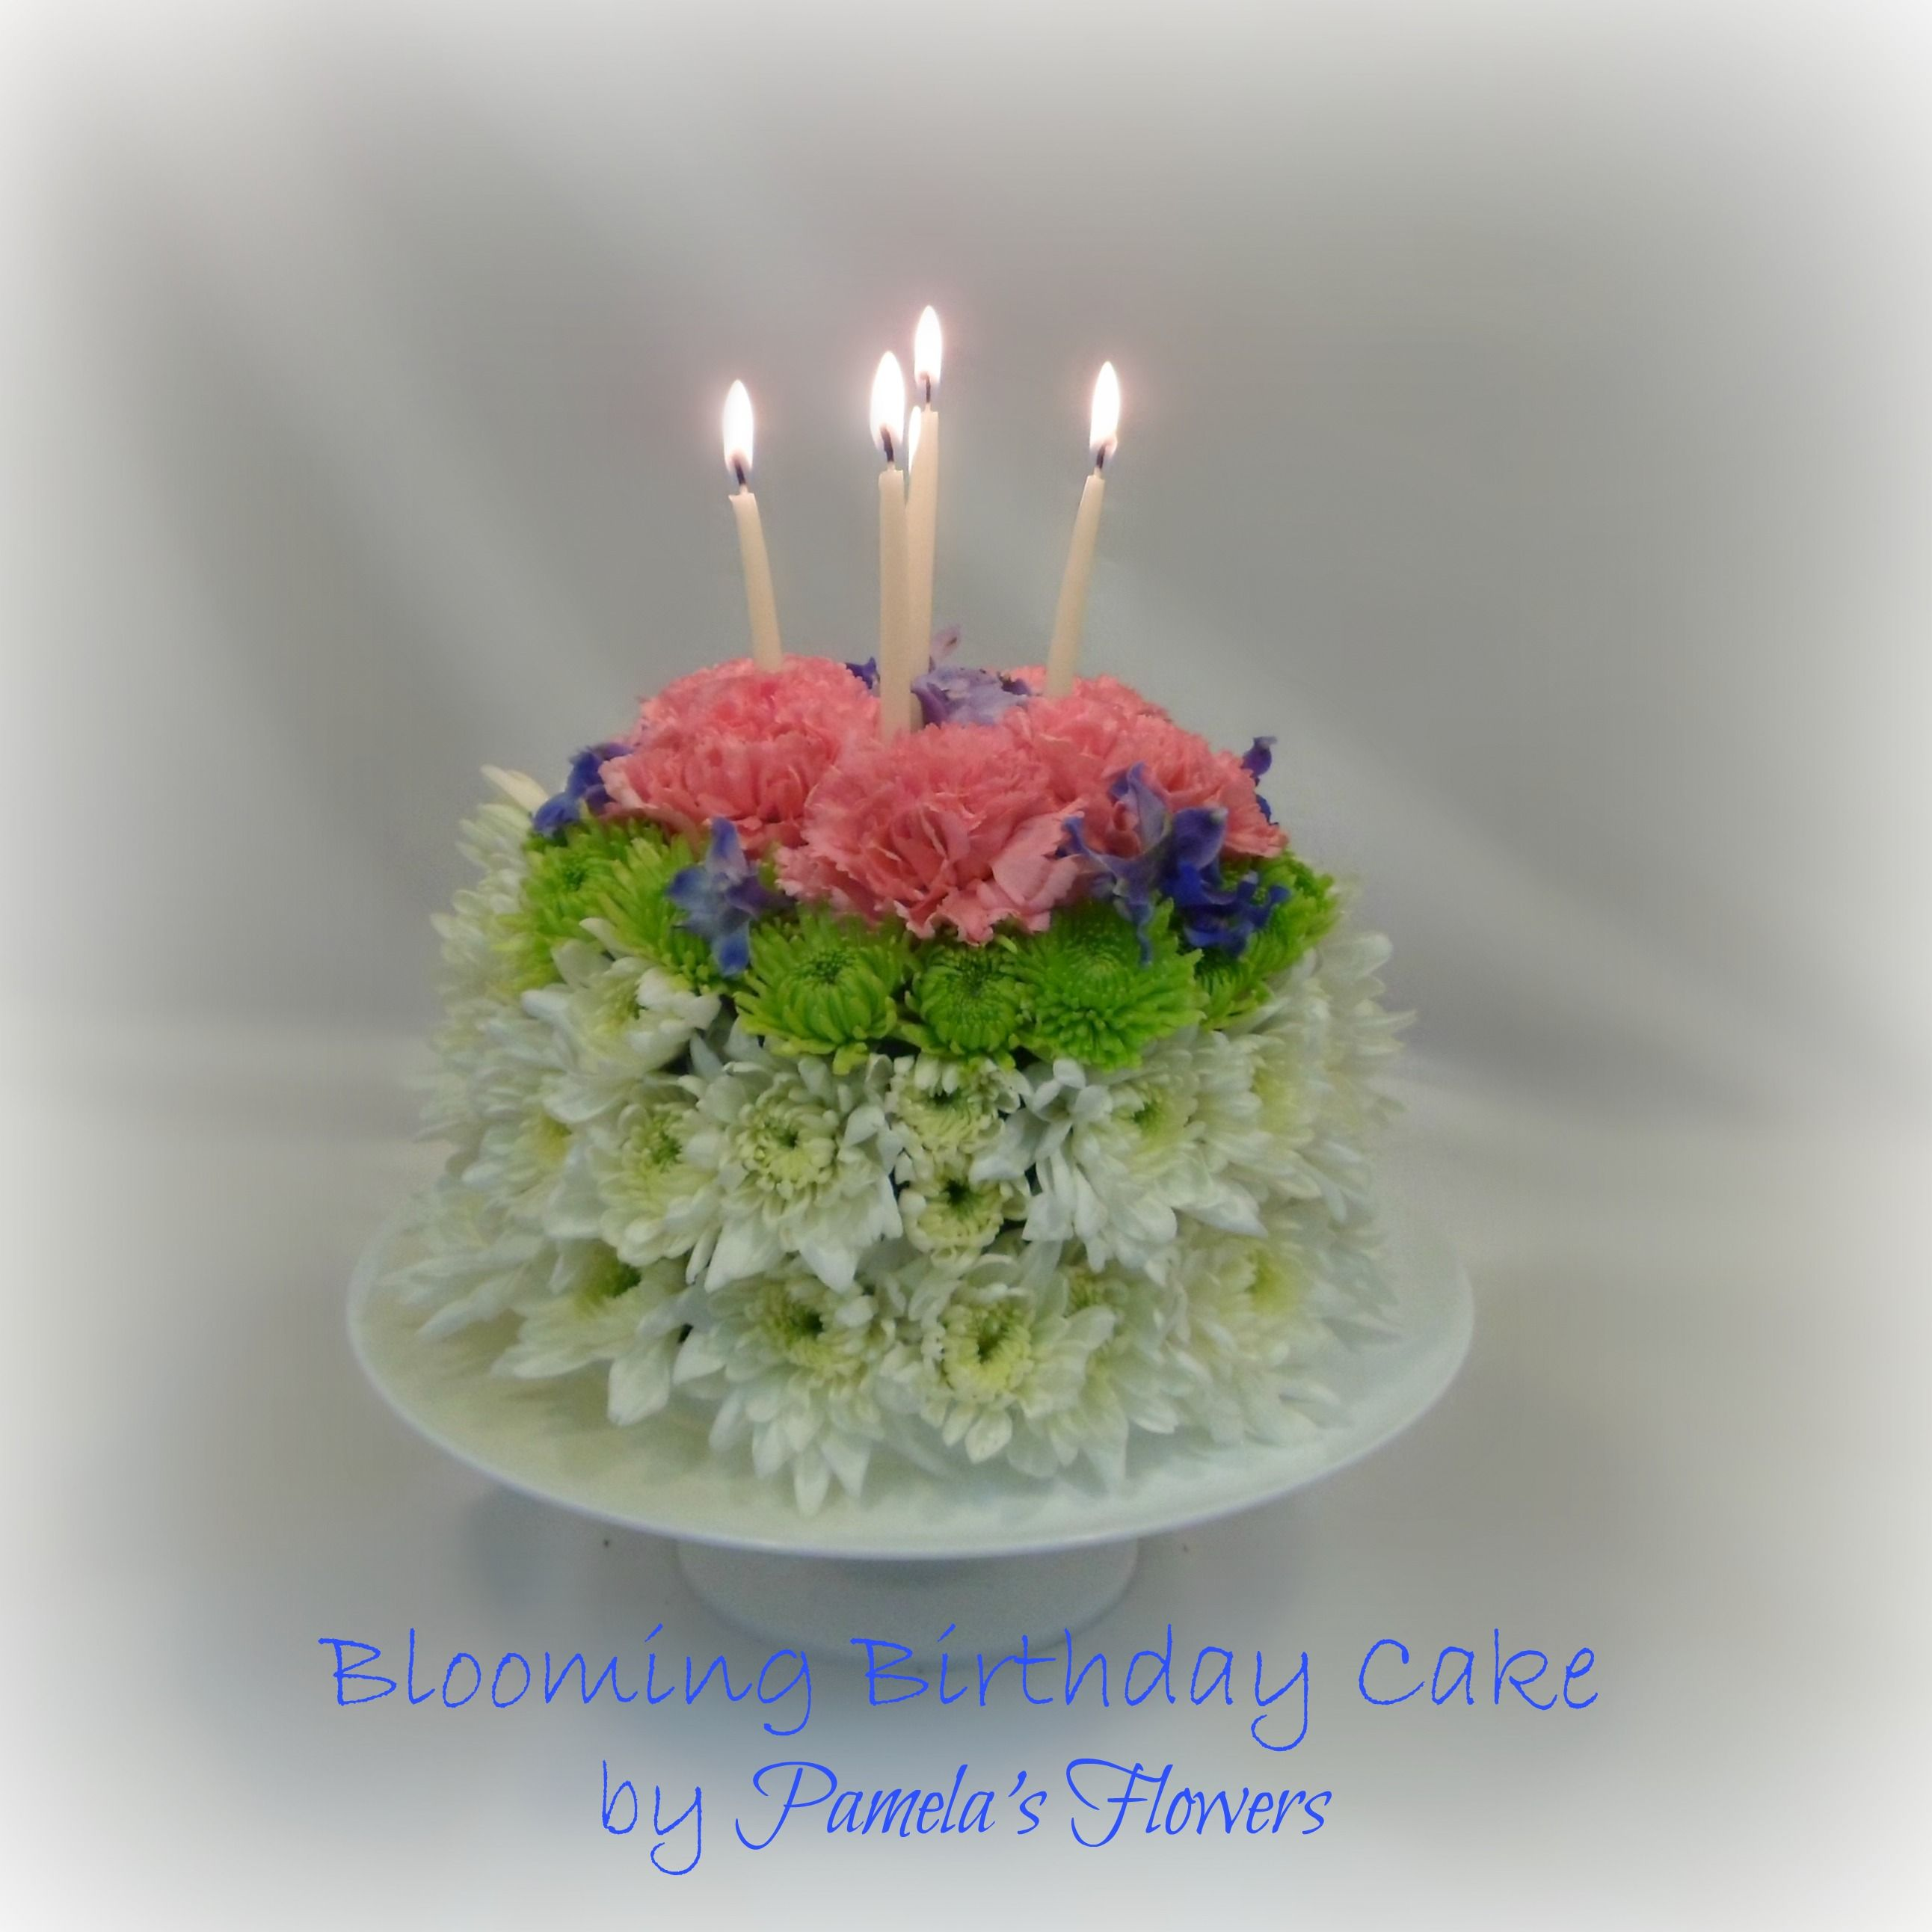 Blooming Birthday Cake Floral Arrangement Delivery in Harrisburg PA